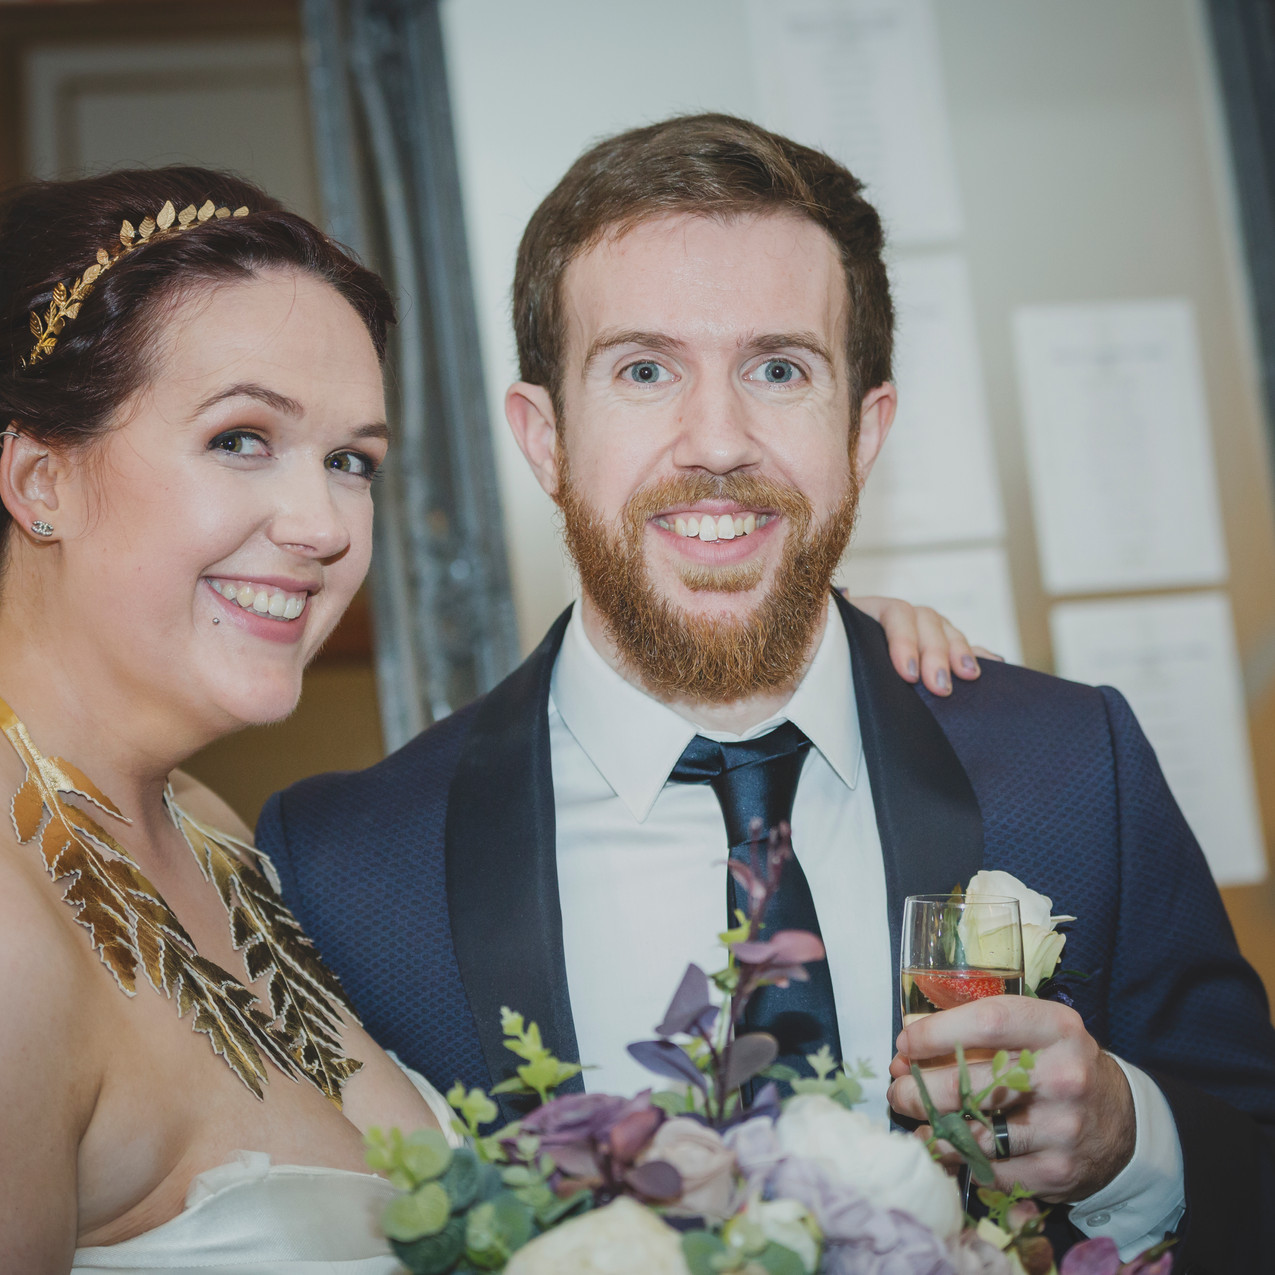 wedding-photographer-drogheda-meath-ireland-pause-time-photography